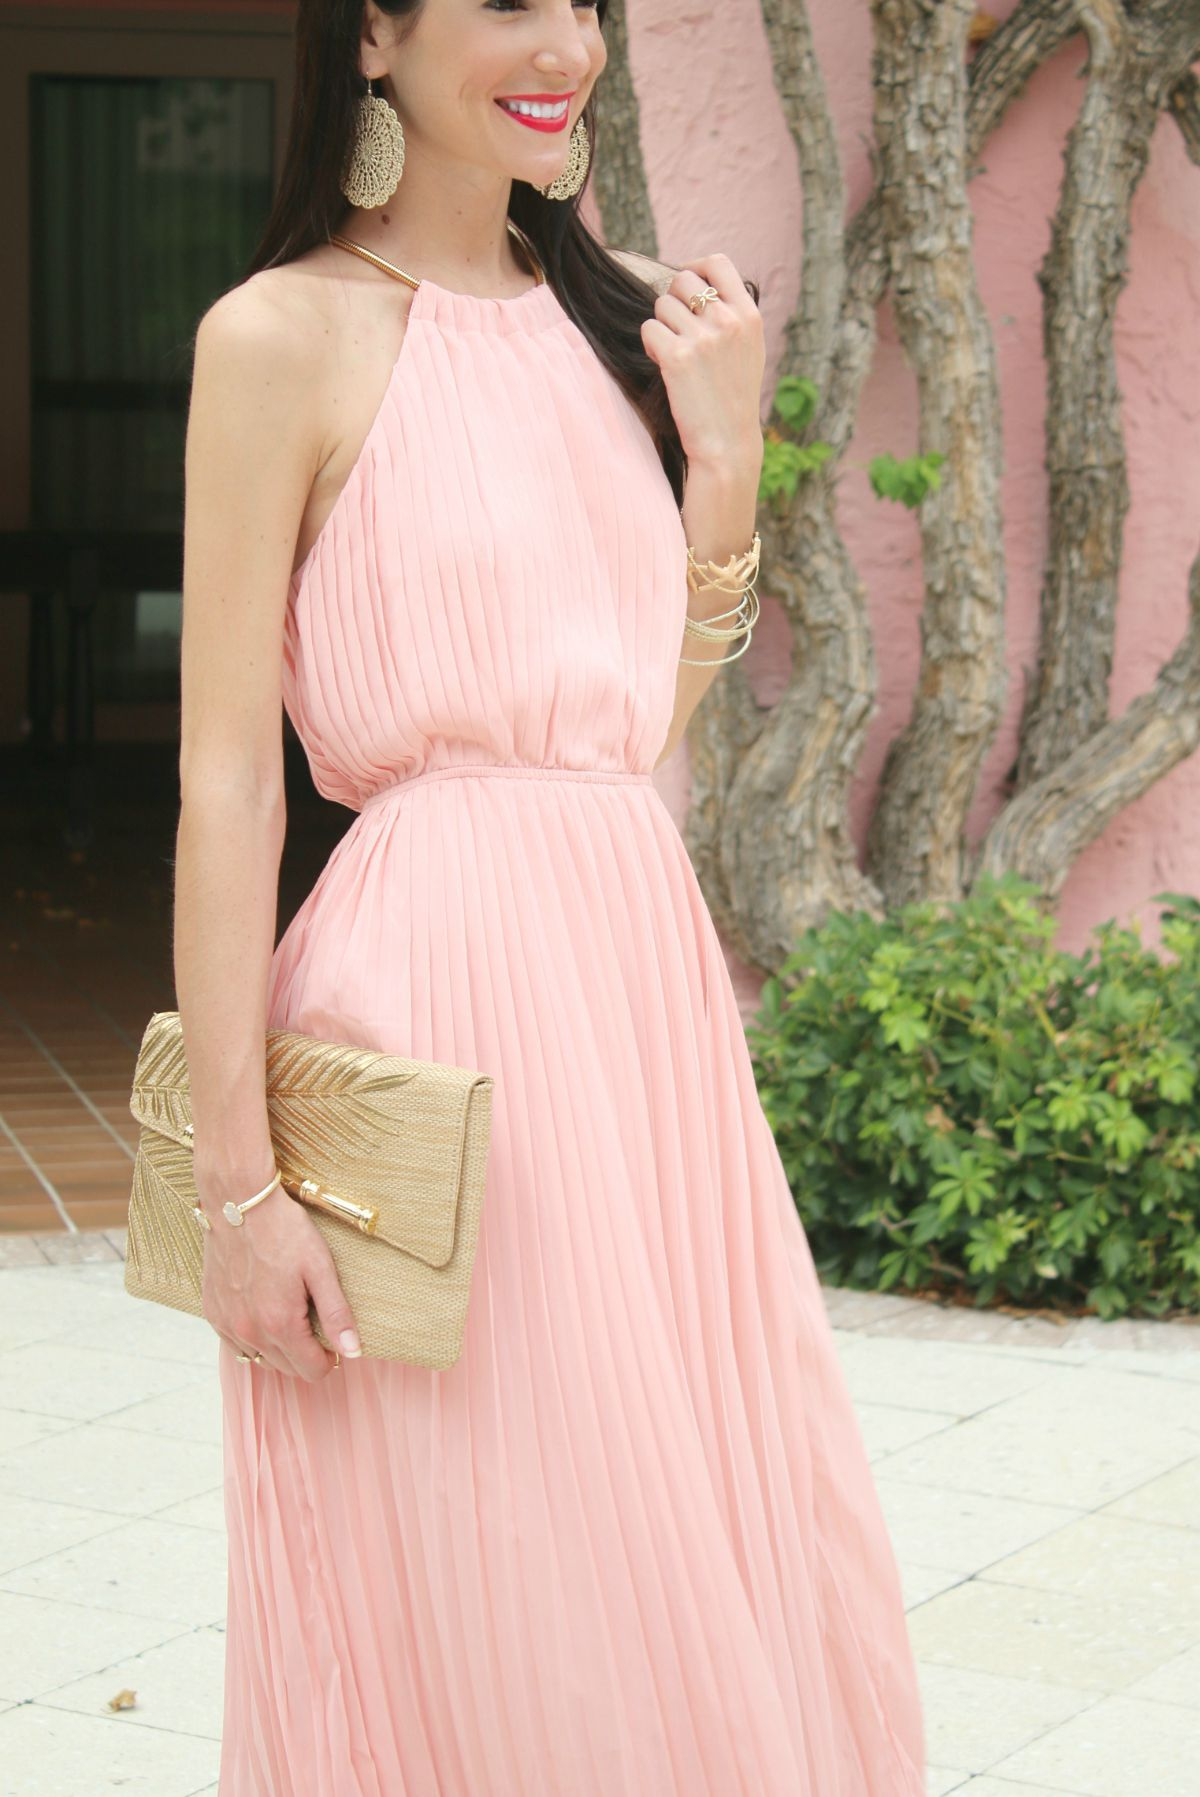 Sheinside pink pleated maxi dress in boca raton pink maxi gold